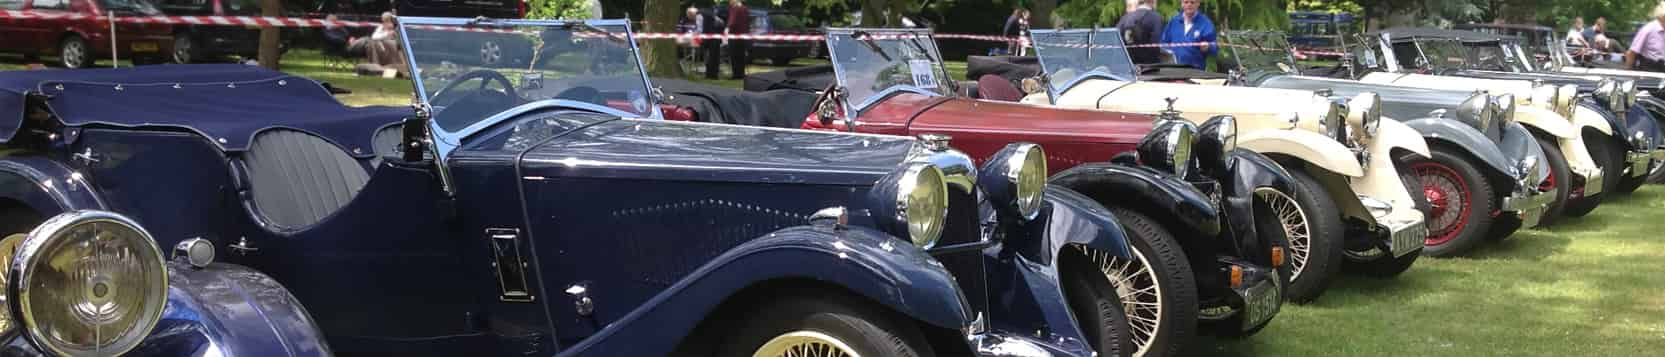 Vintage and Classic Cars in row